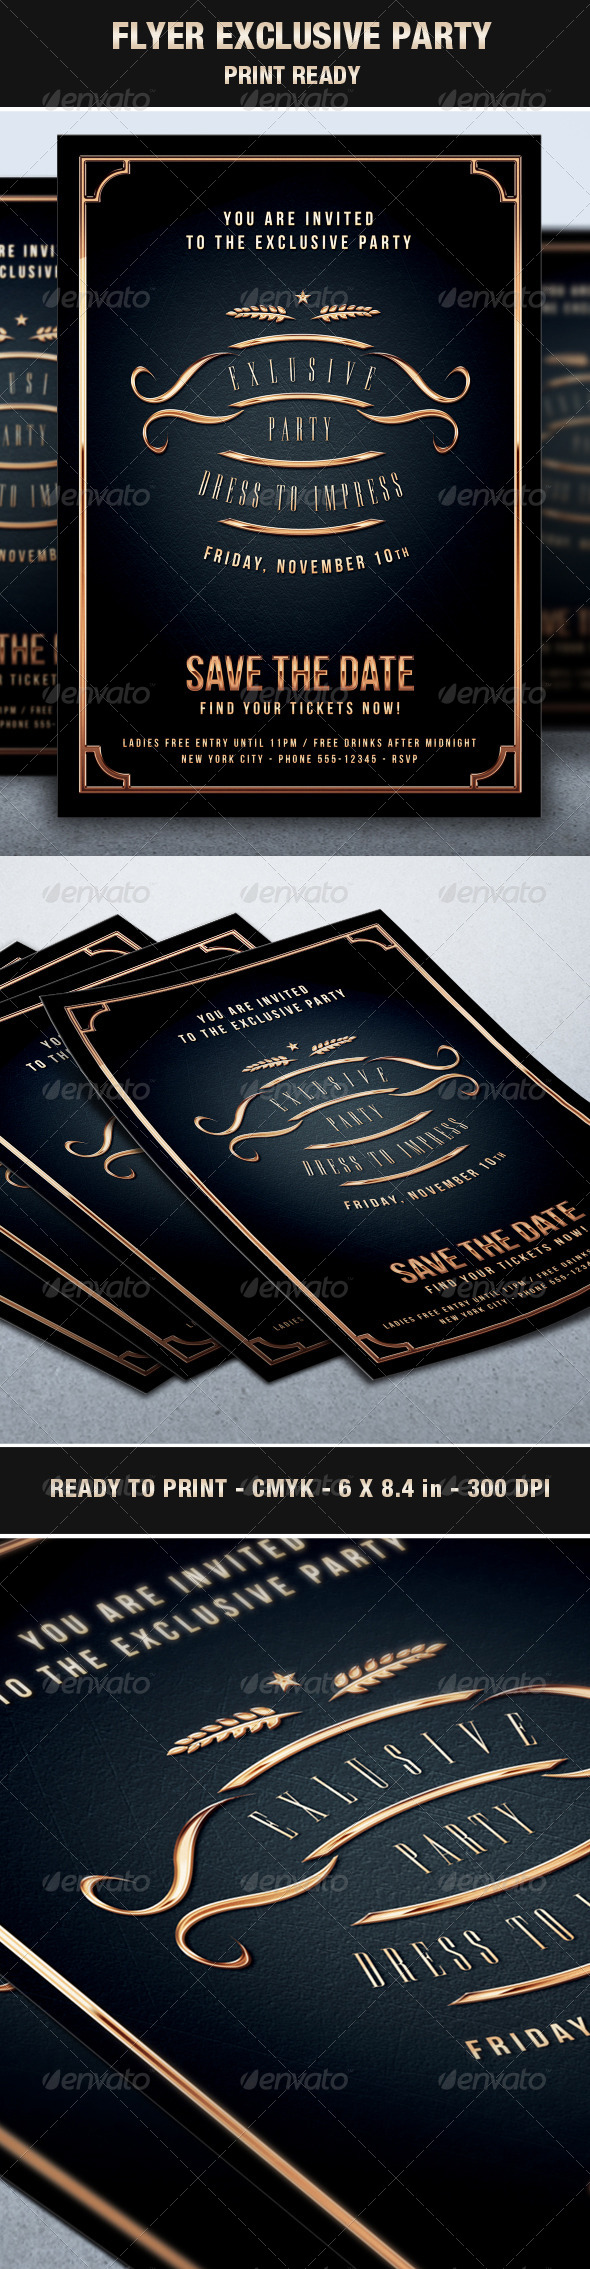 Flyer Exclusive & Elegant Party Vip Style - Events Flyers